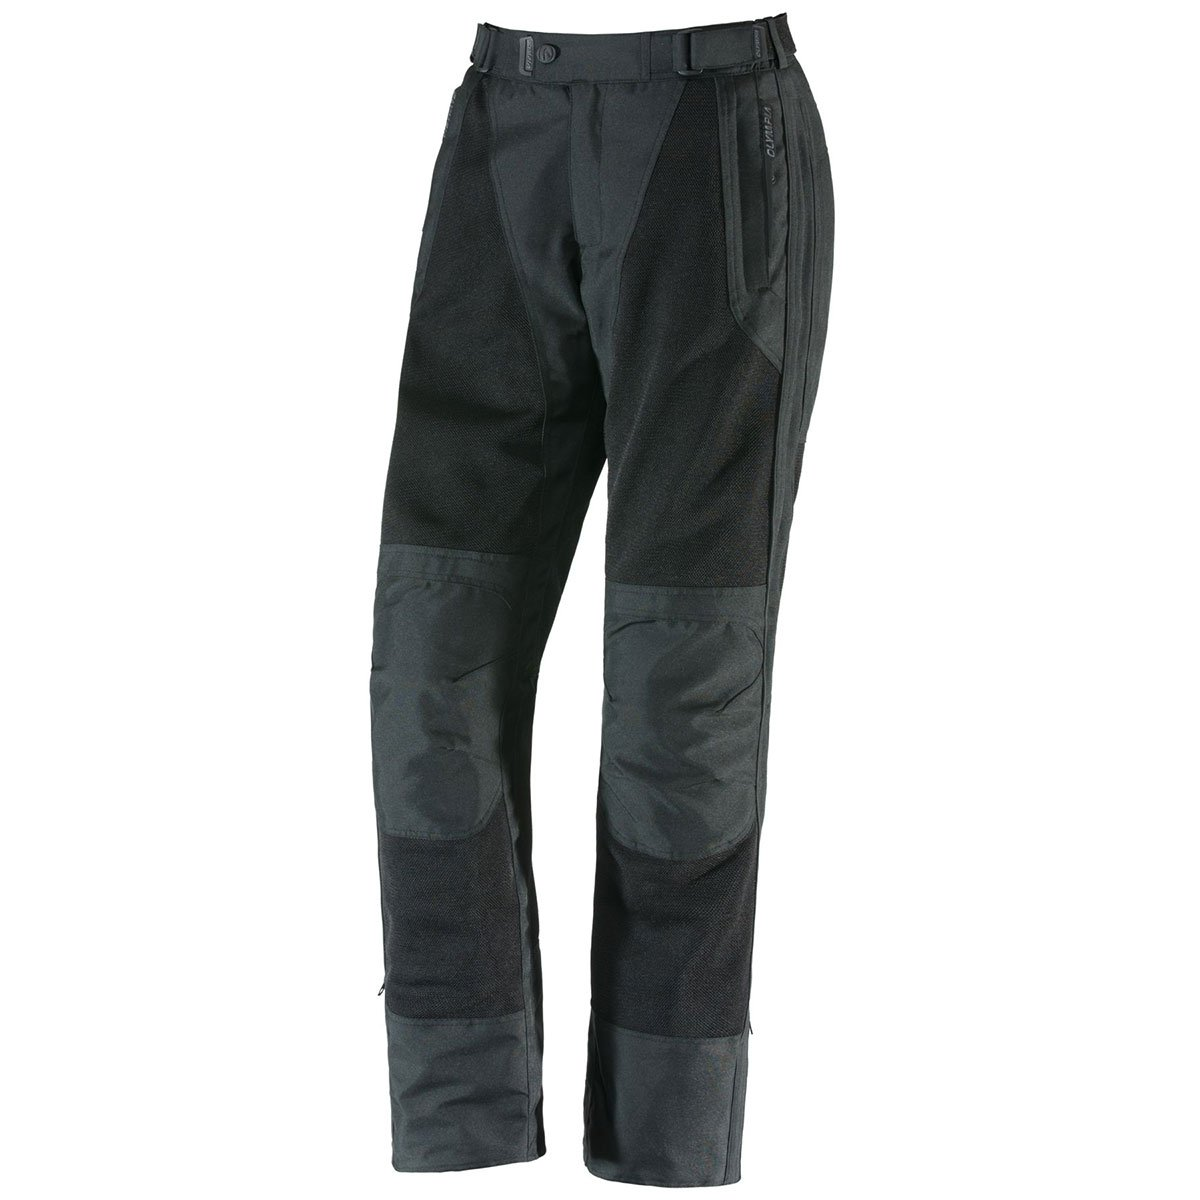 Olympia Sports Womens Eve Street Racing Motorcycle Pants - Black Size 6